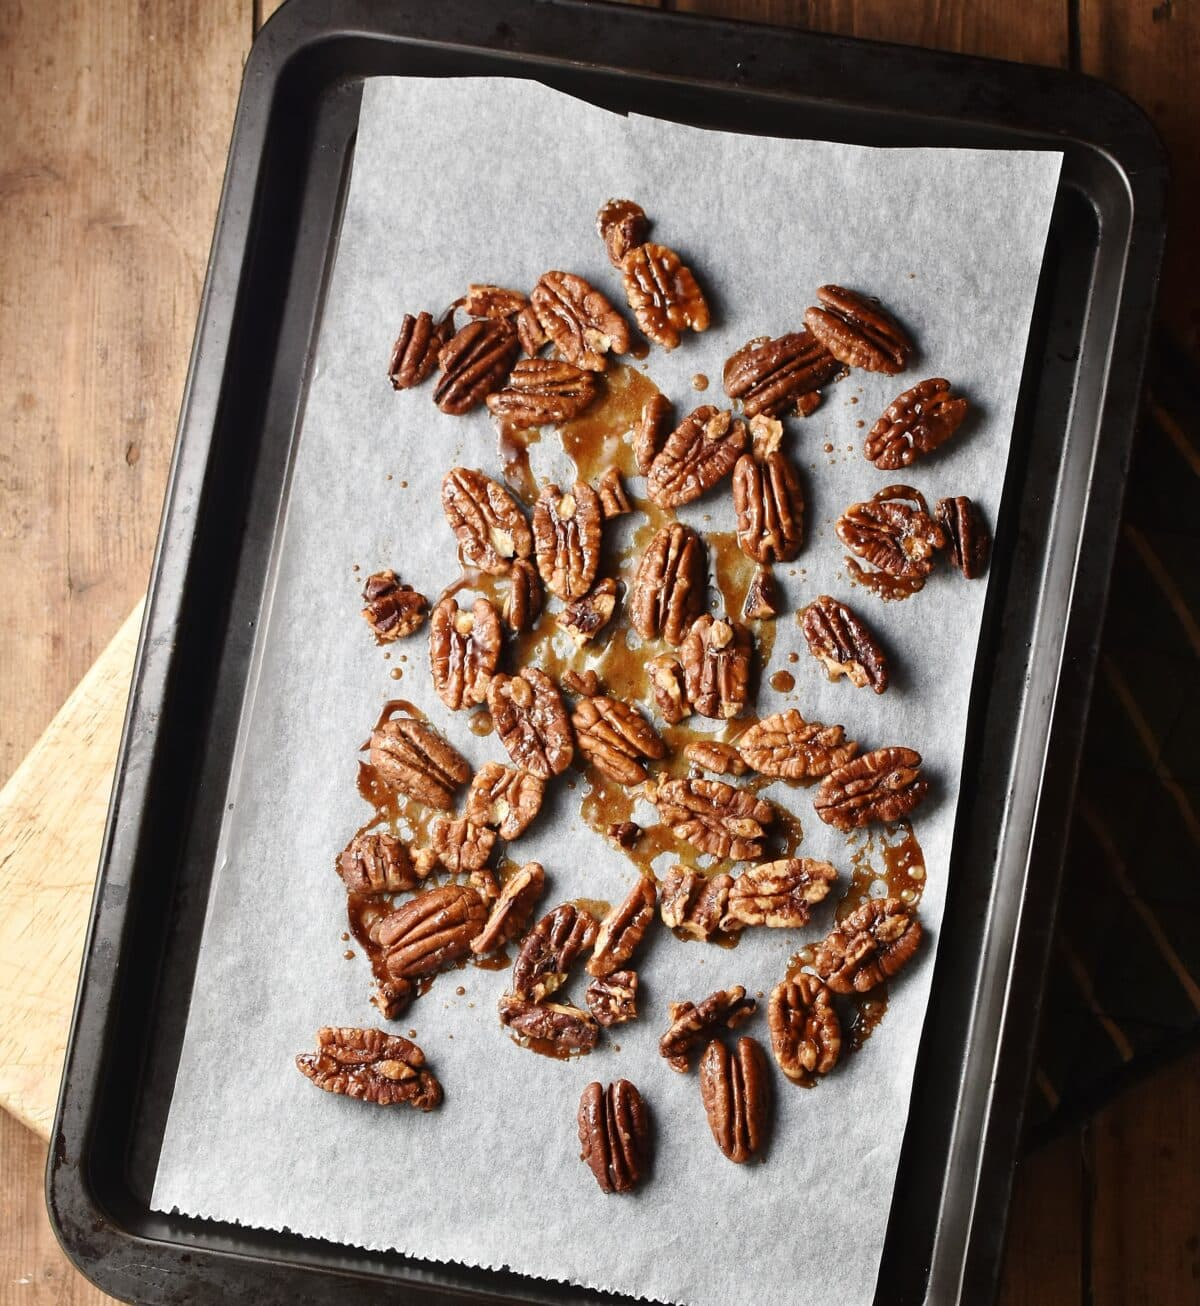 Roasted pecans on top of baking sheet lined with parchment paper.